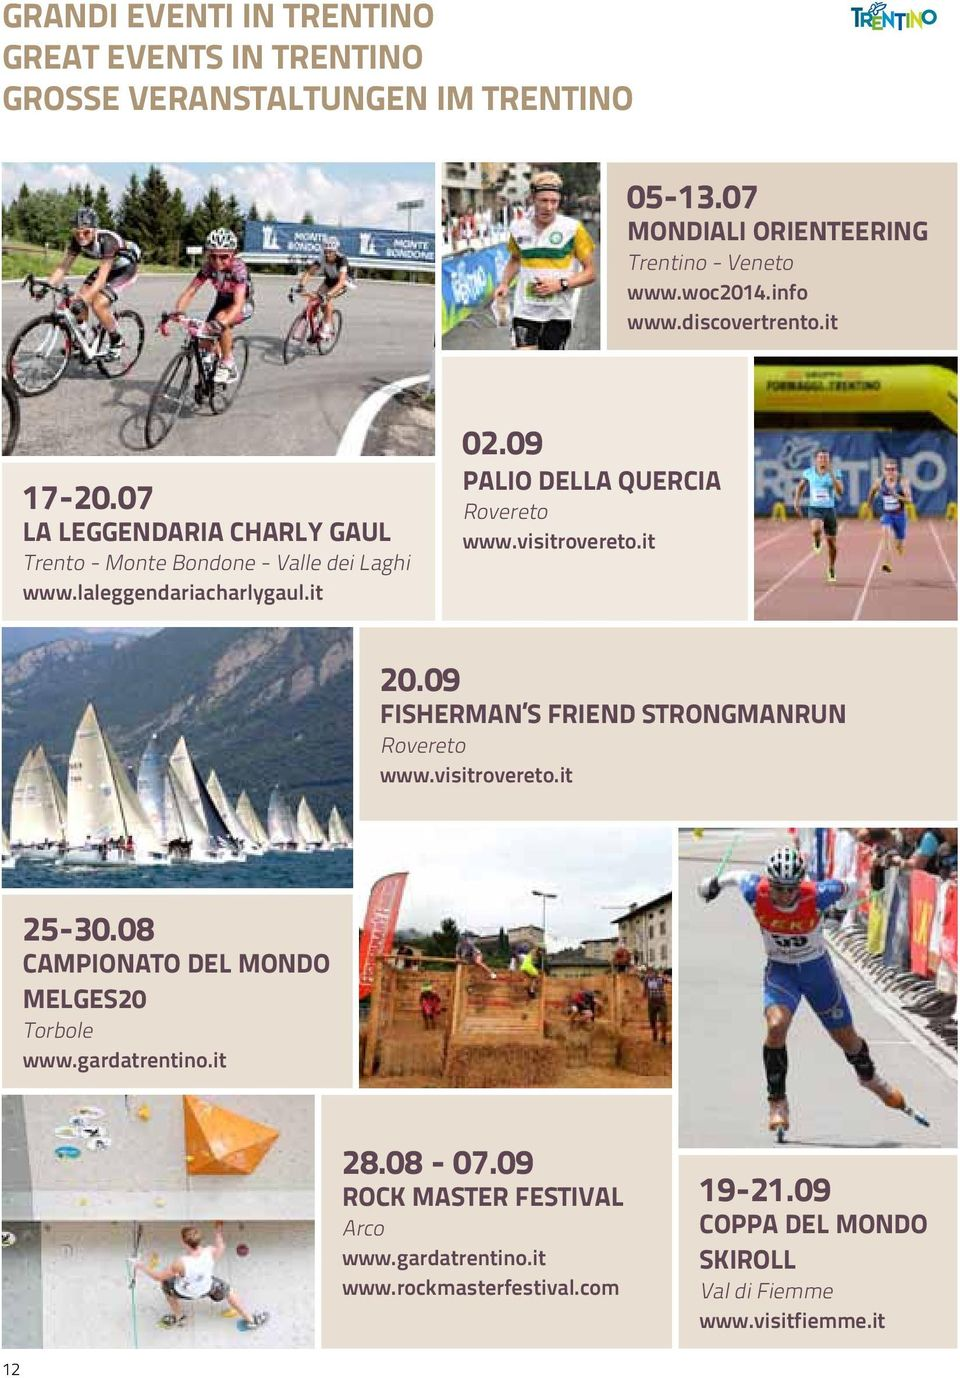 09 PALIO DELLA QUERCIA Rovereto www.visitrovereto.it 20.09 FISHERMAN S FRIEND STRONGMANRUN Rovereto www.visitrovereto.it 25-30.